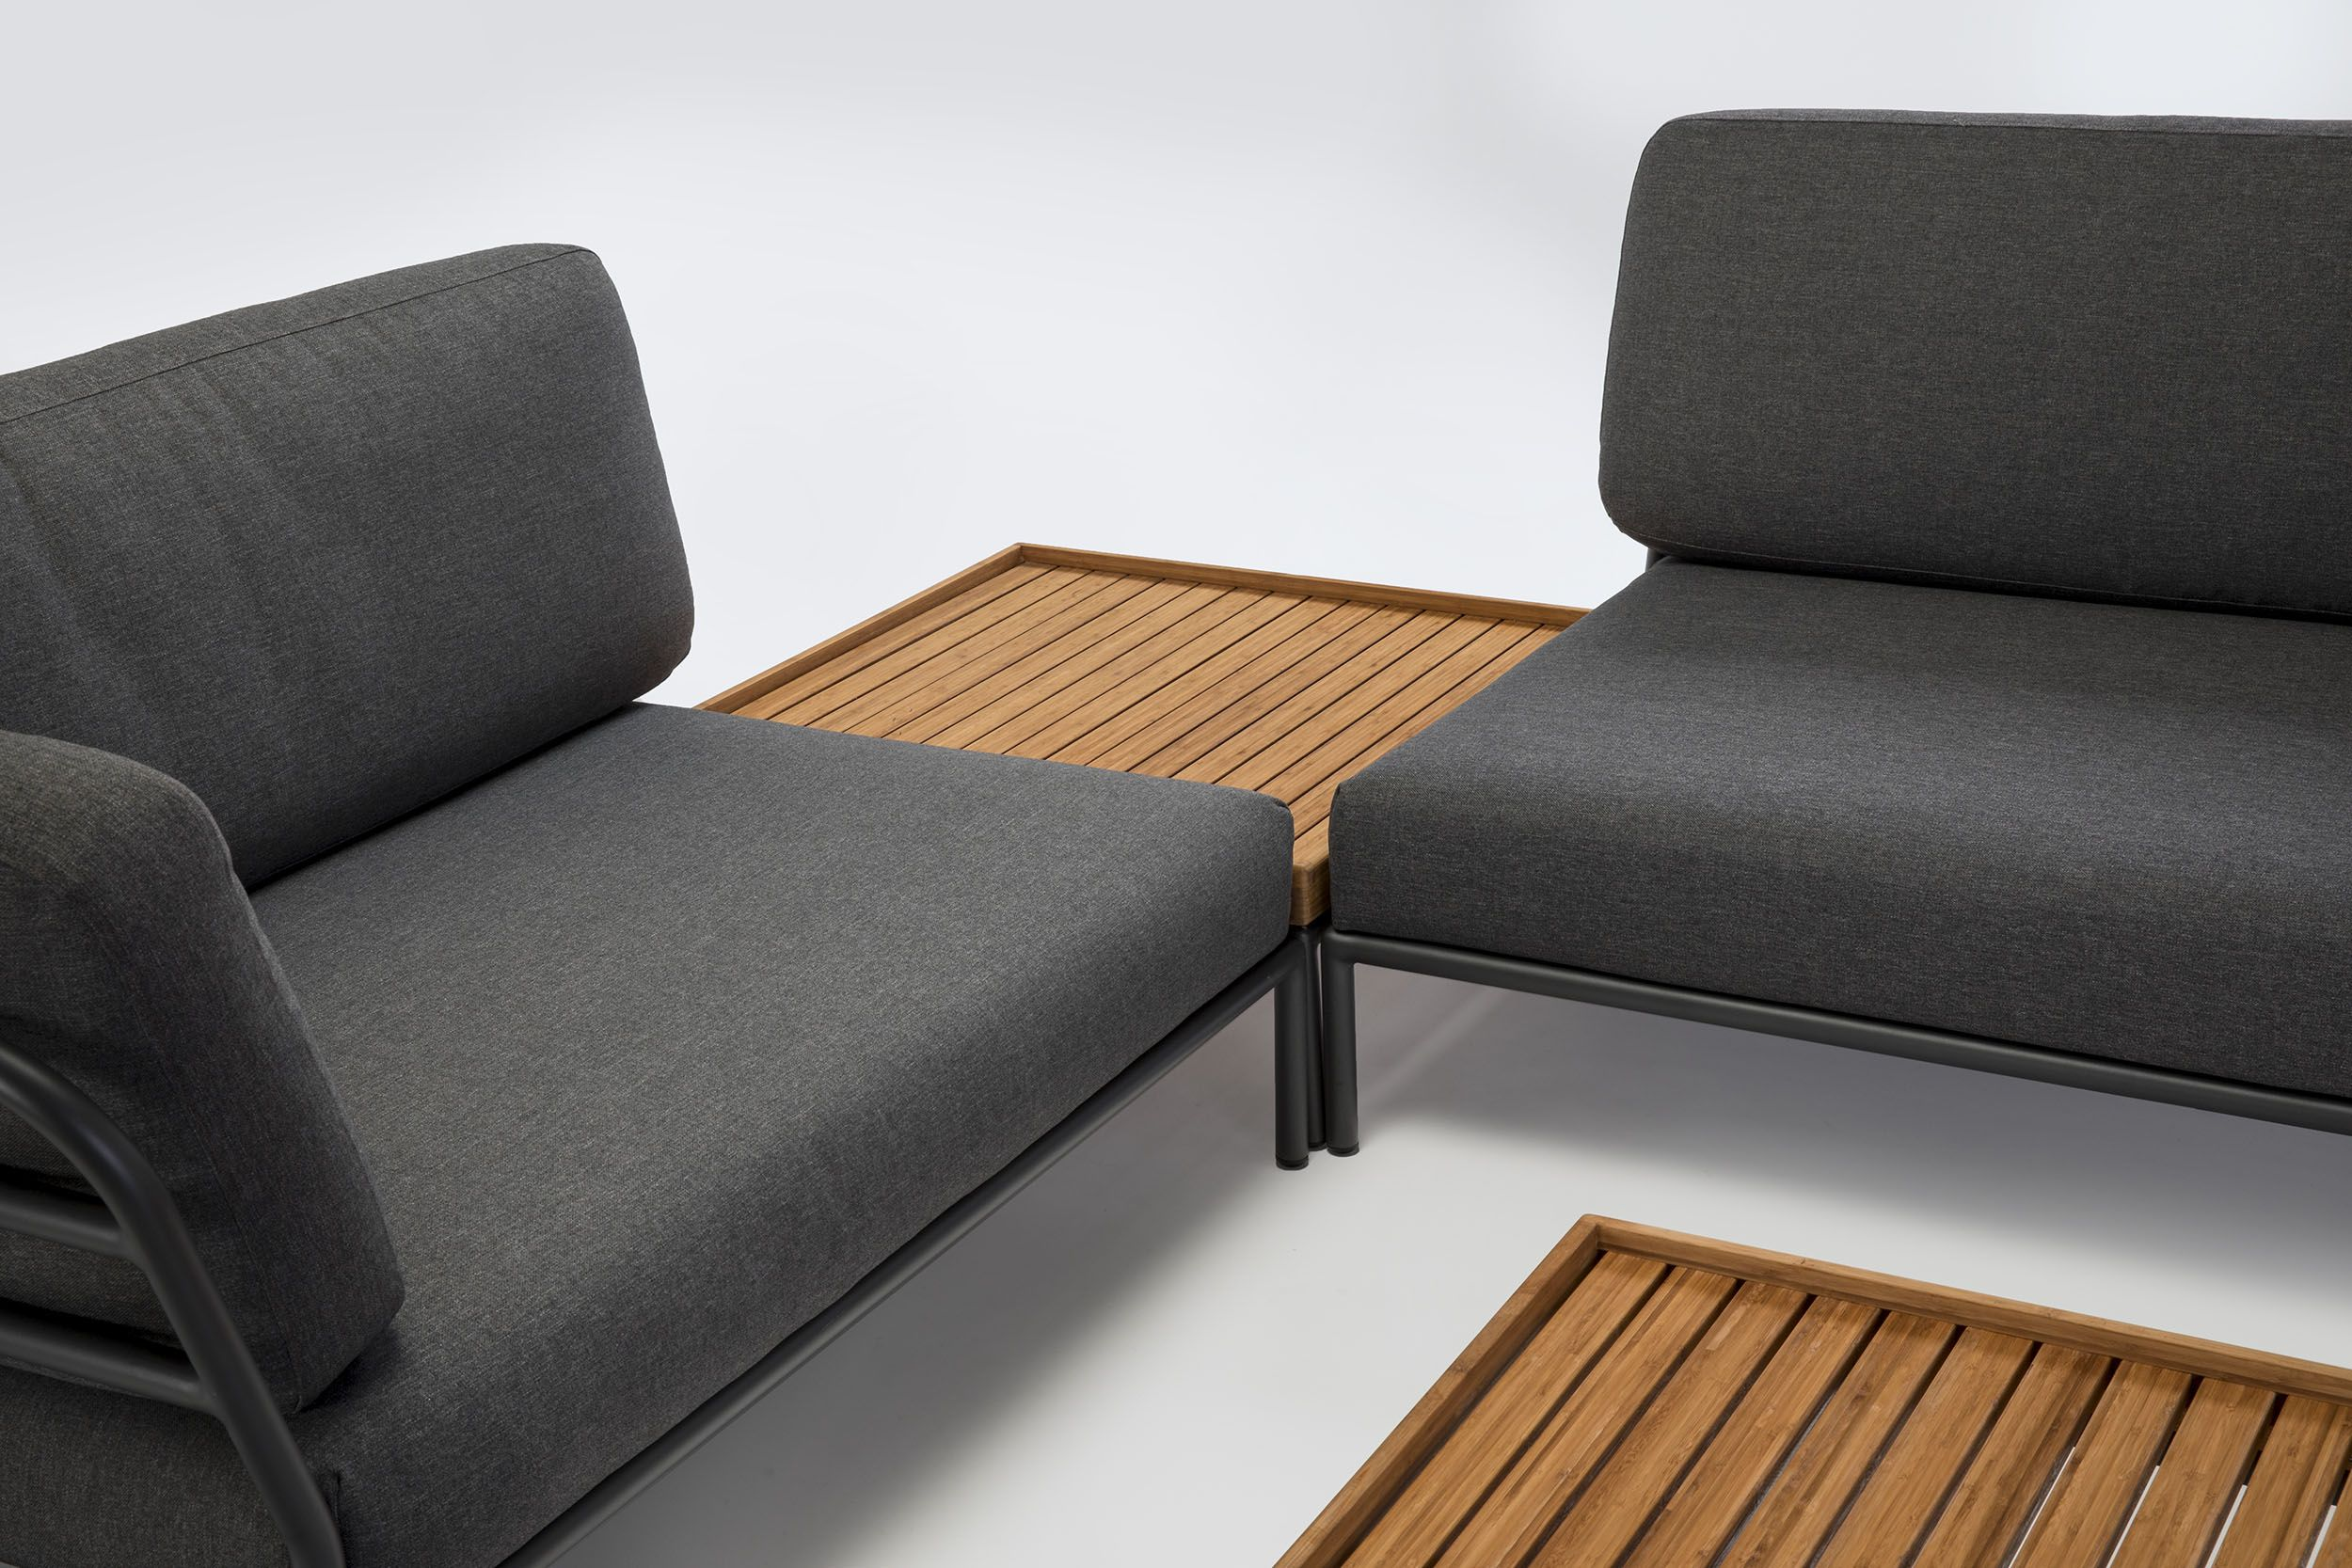 Dänisches Design Sofa Level Outdoor Lounge Modules From Houe Outdoor Outdoor Lounge